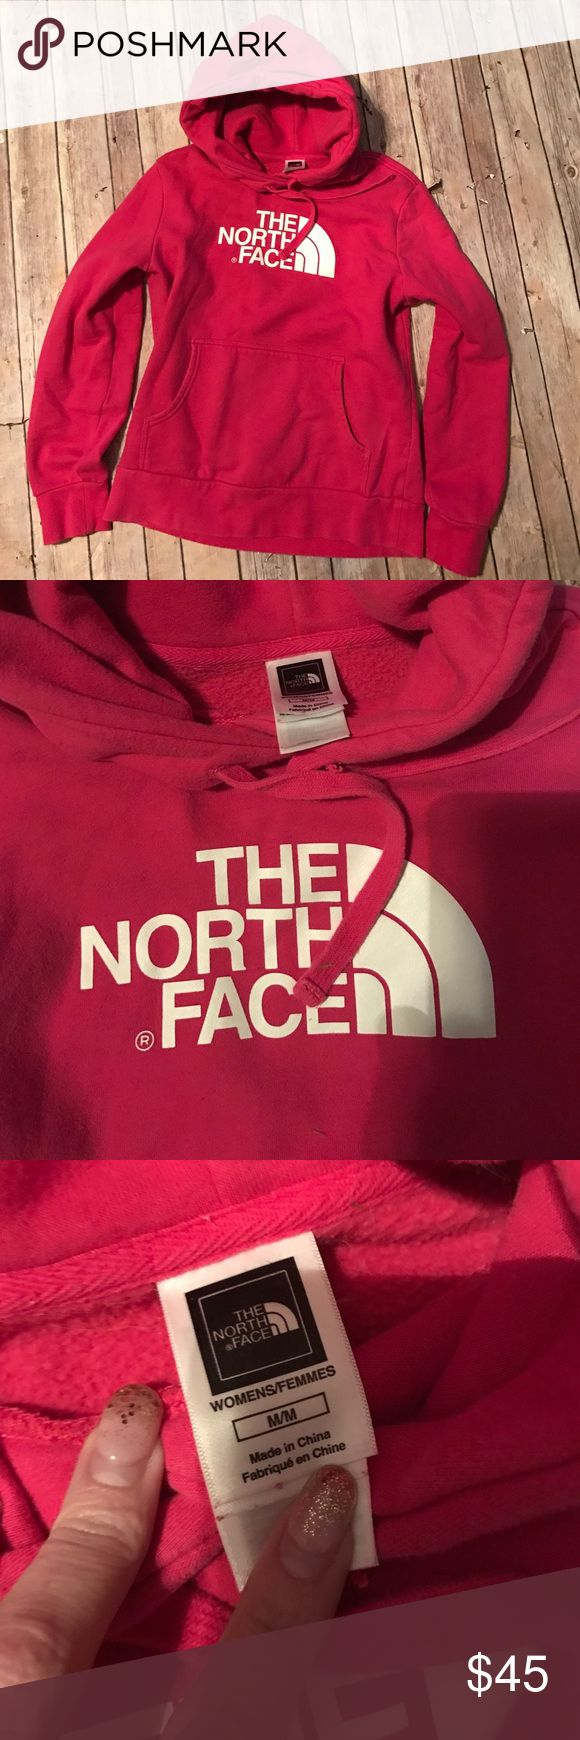 Women's The North Face Pink Hoodie Sweatshirt! M Very pretty The North Face Hot Pink Long Sleeve Hooded Sweatshirt! Medium, Great Used!! The North Face Tops Sweatshirts & Hoodies